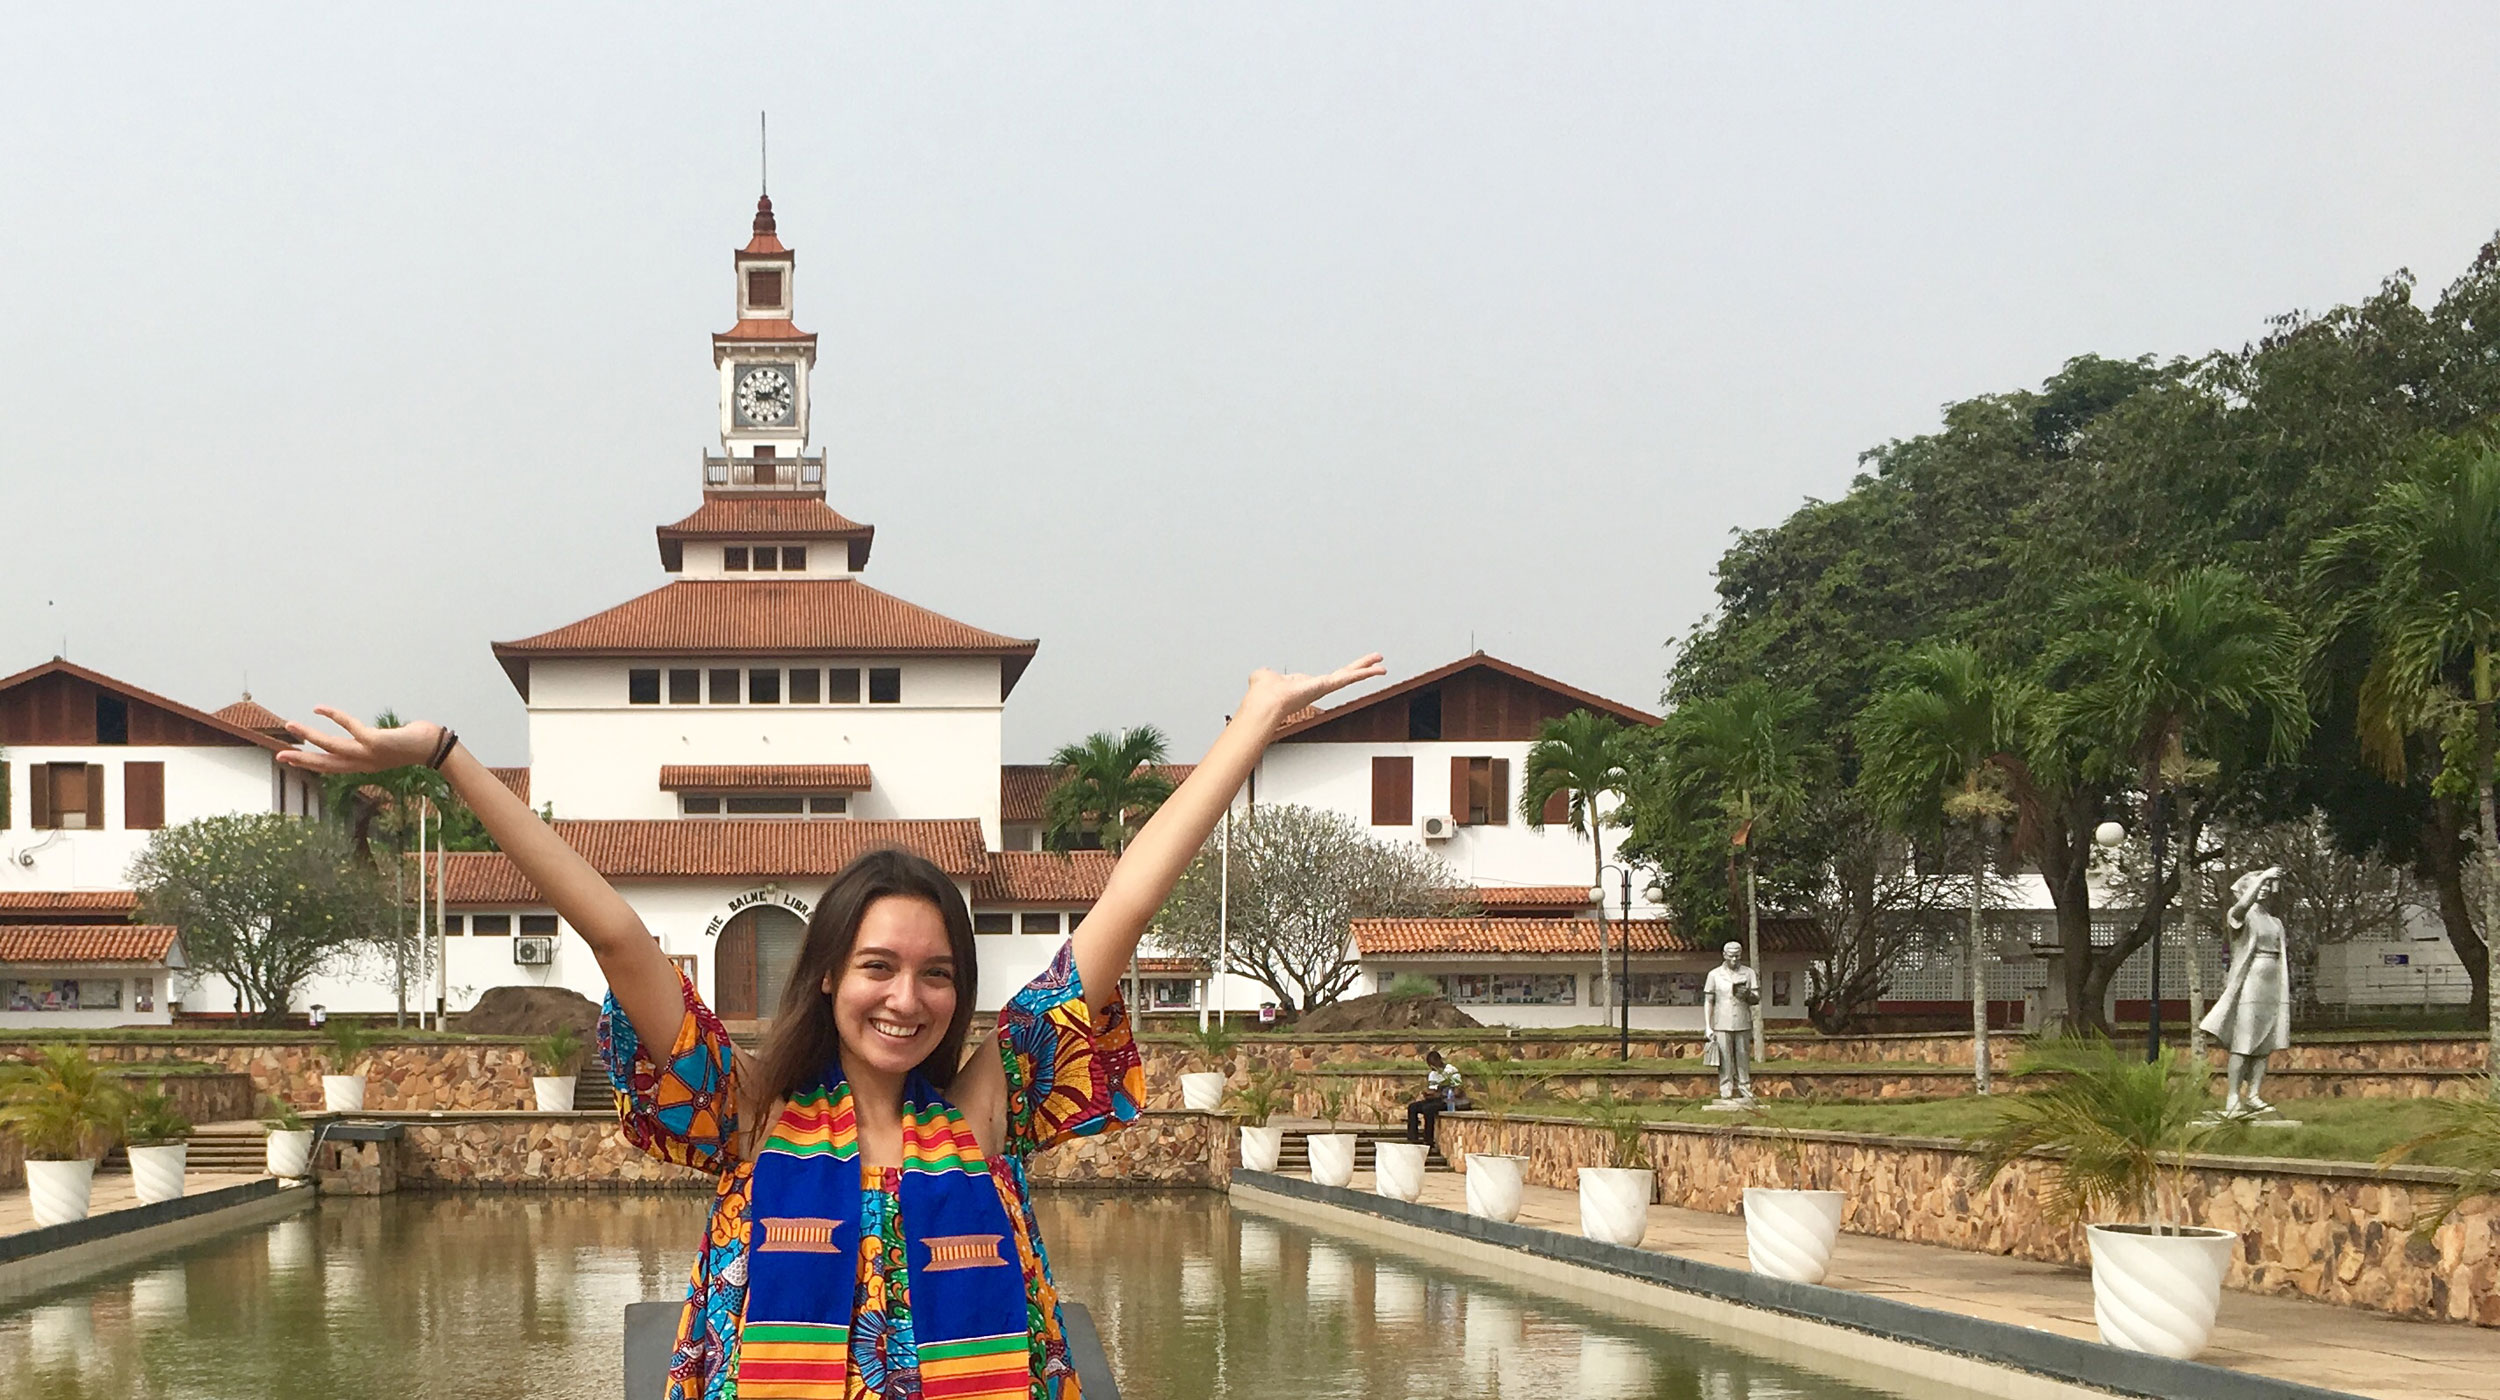 UCEAP student smiling with her arms up in Ghana.